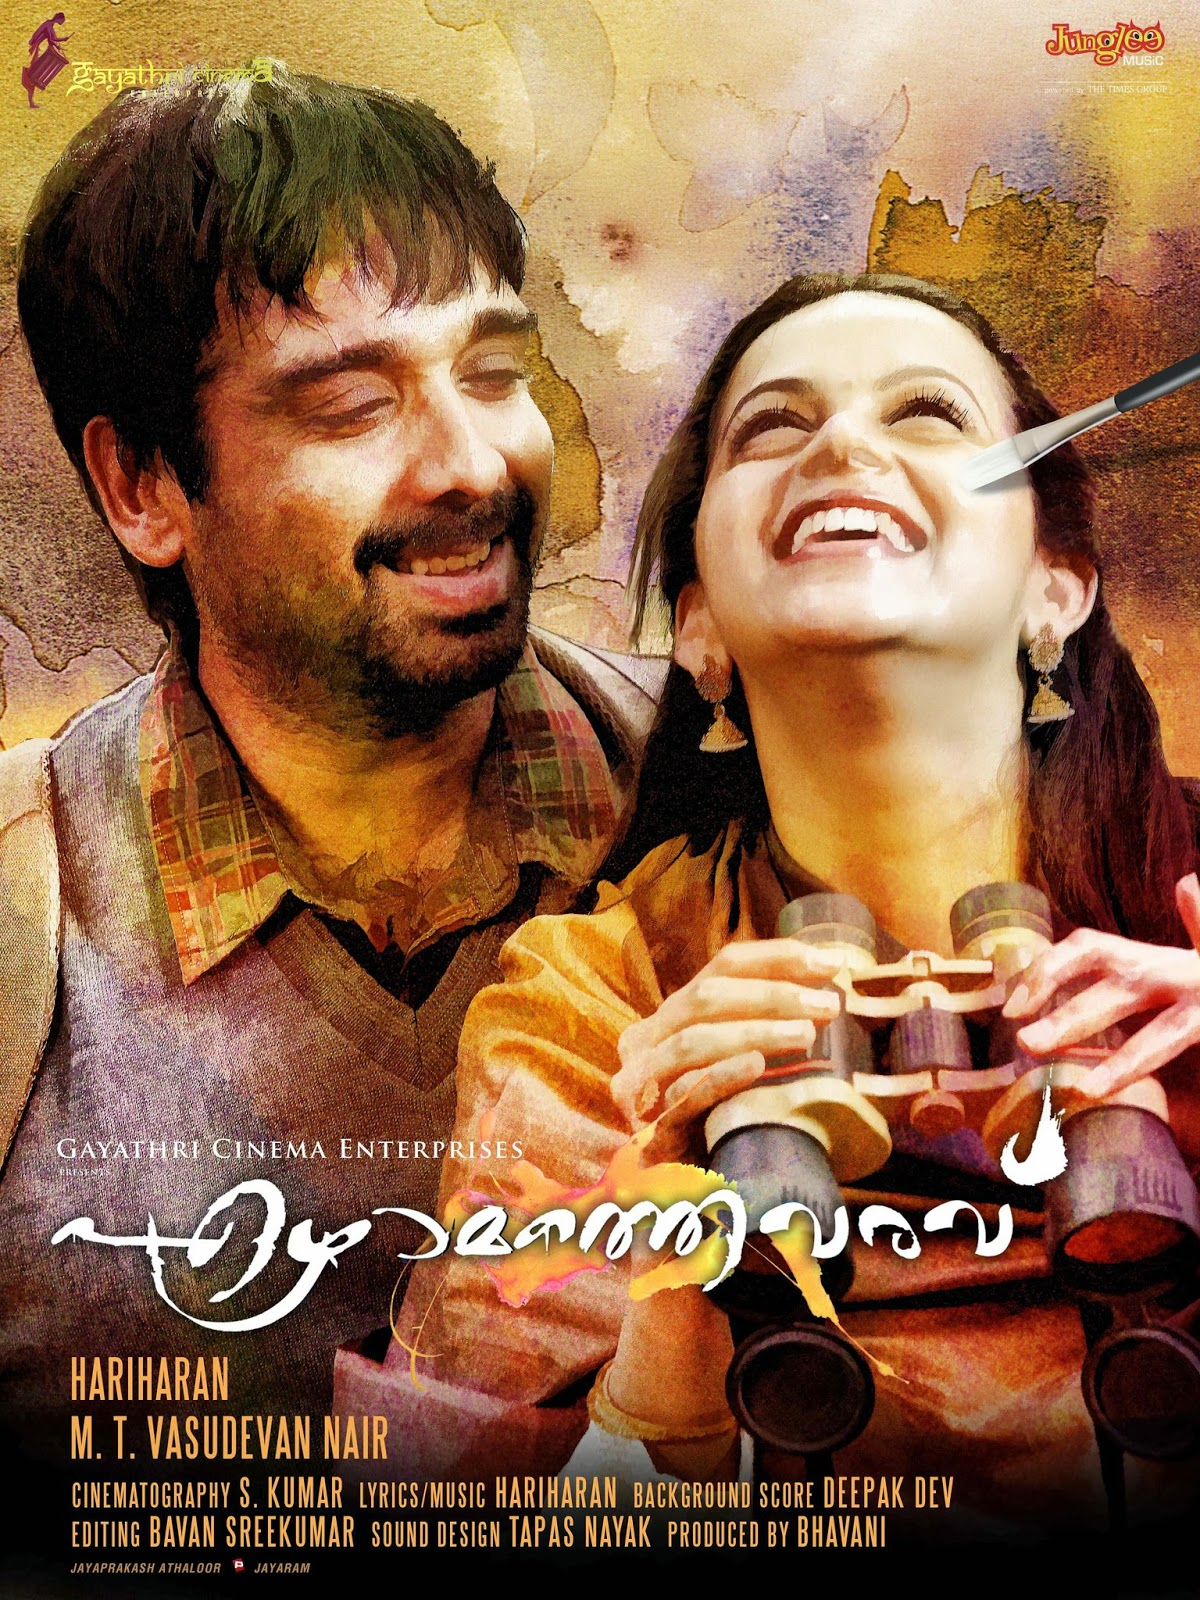 Watch Ezhamathe Varavu (2013) Malayalam HDCam Rip Full Movie Watch Online For Free Download